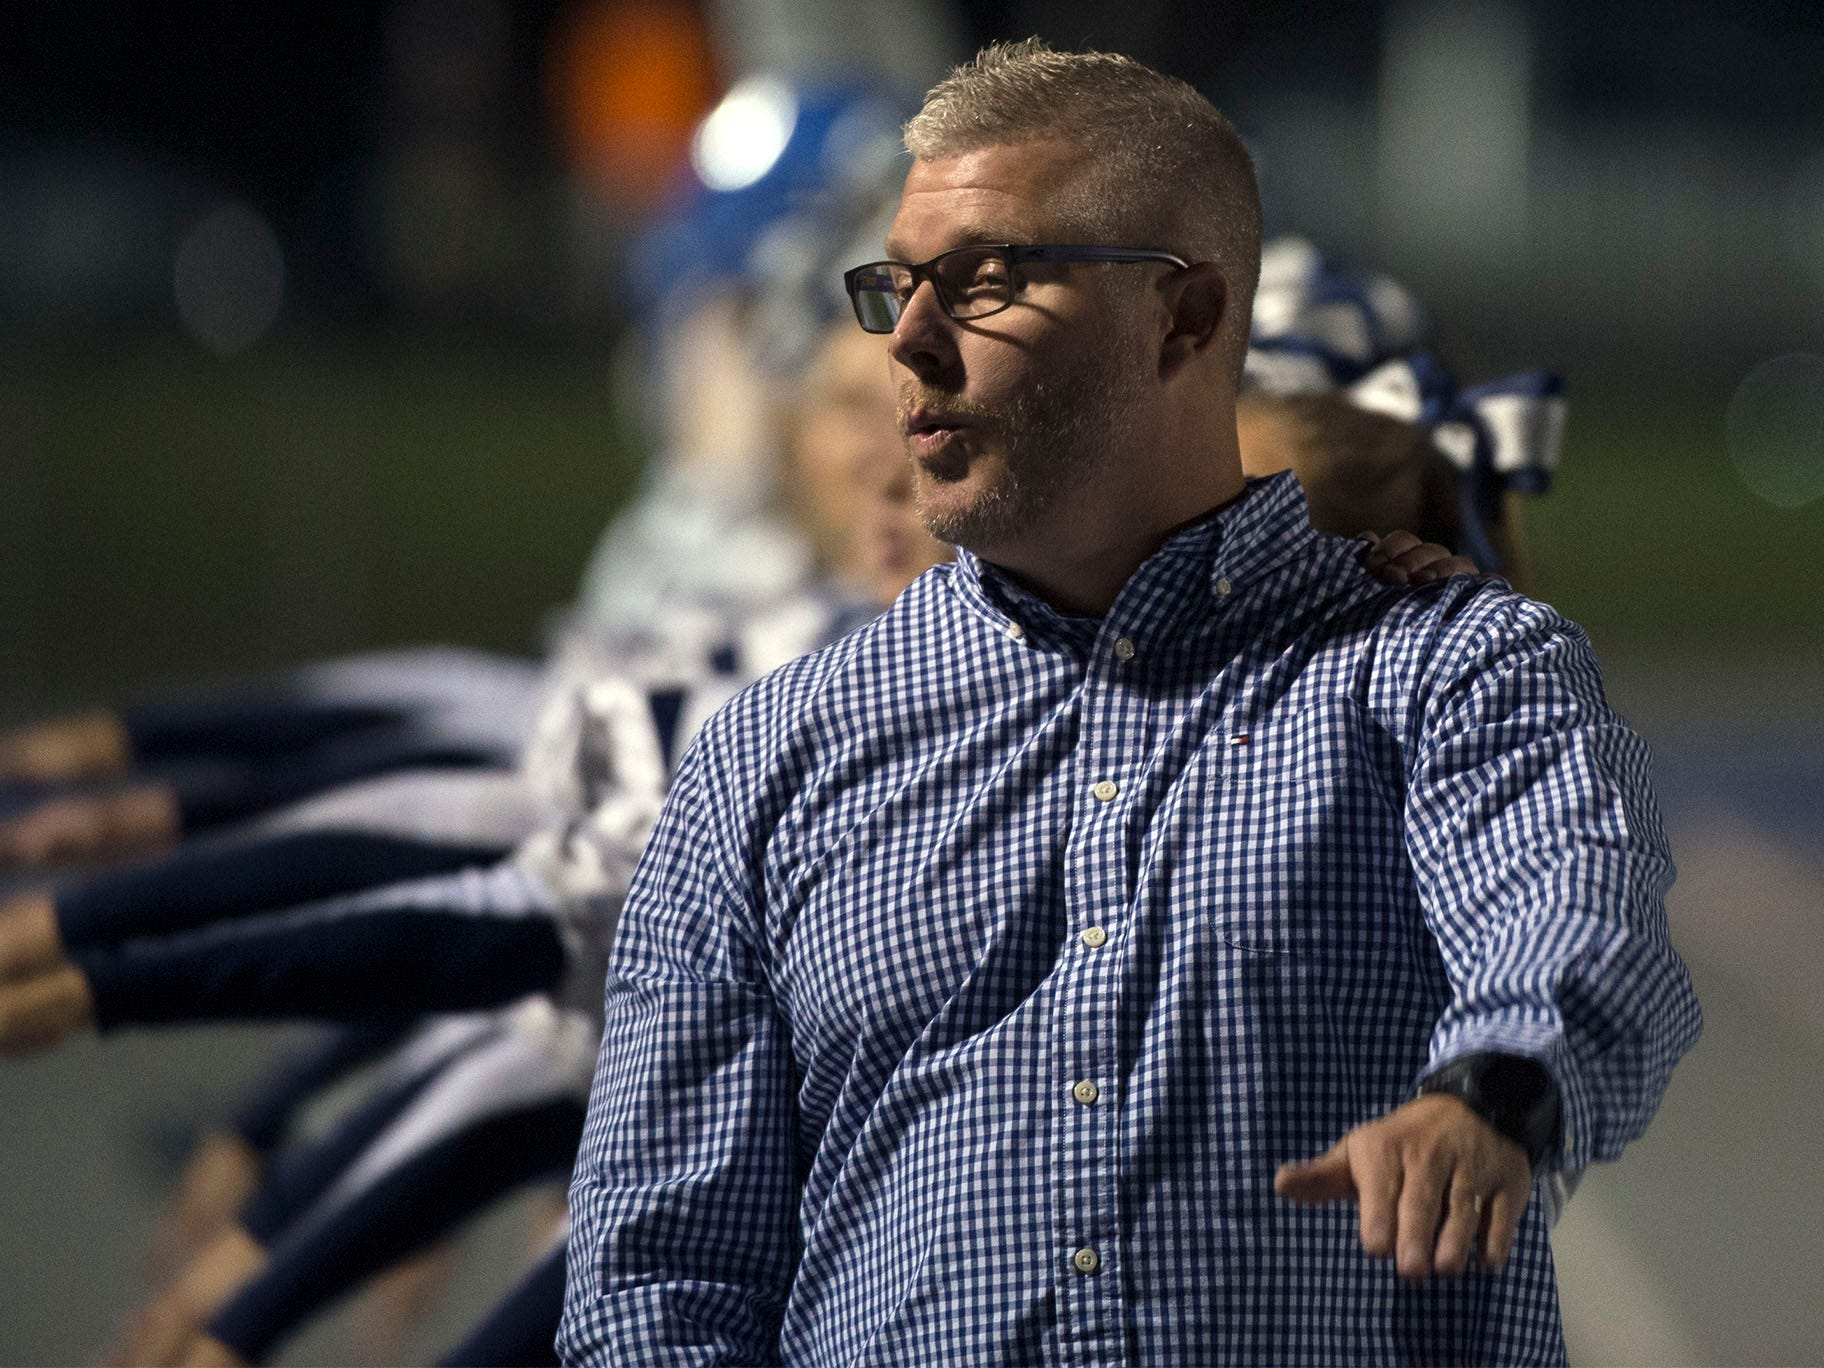 Principal Brad Ocker does a cheer for Chambersburg. Chambersburg Trojans are 5-1 after a homecoming victory over Cumberland Valley 28-14 in PIAA football on Friday, Sept. 28, 2018.